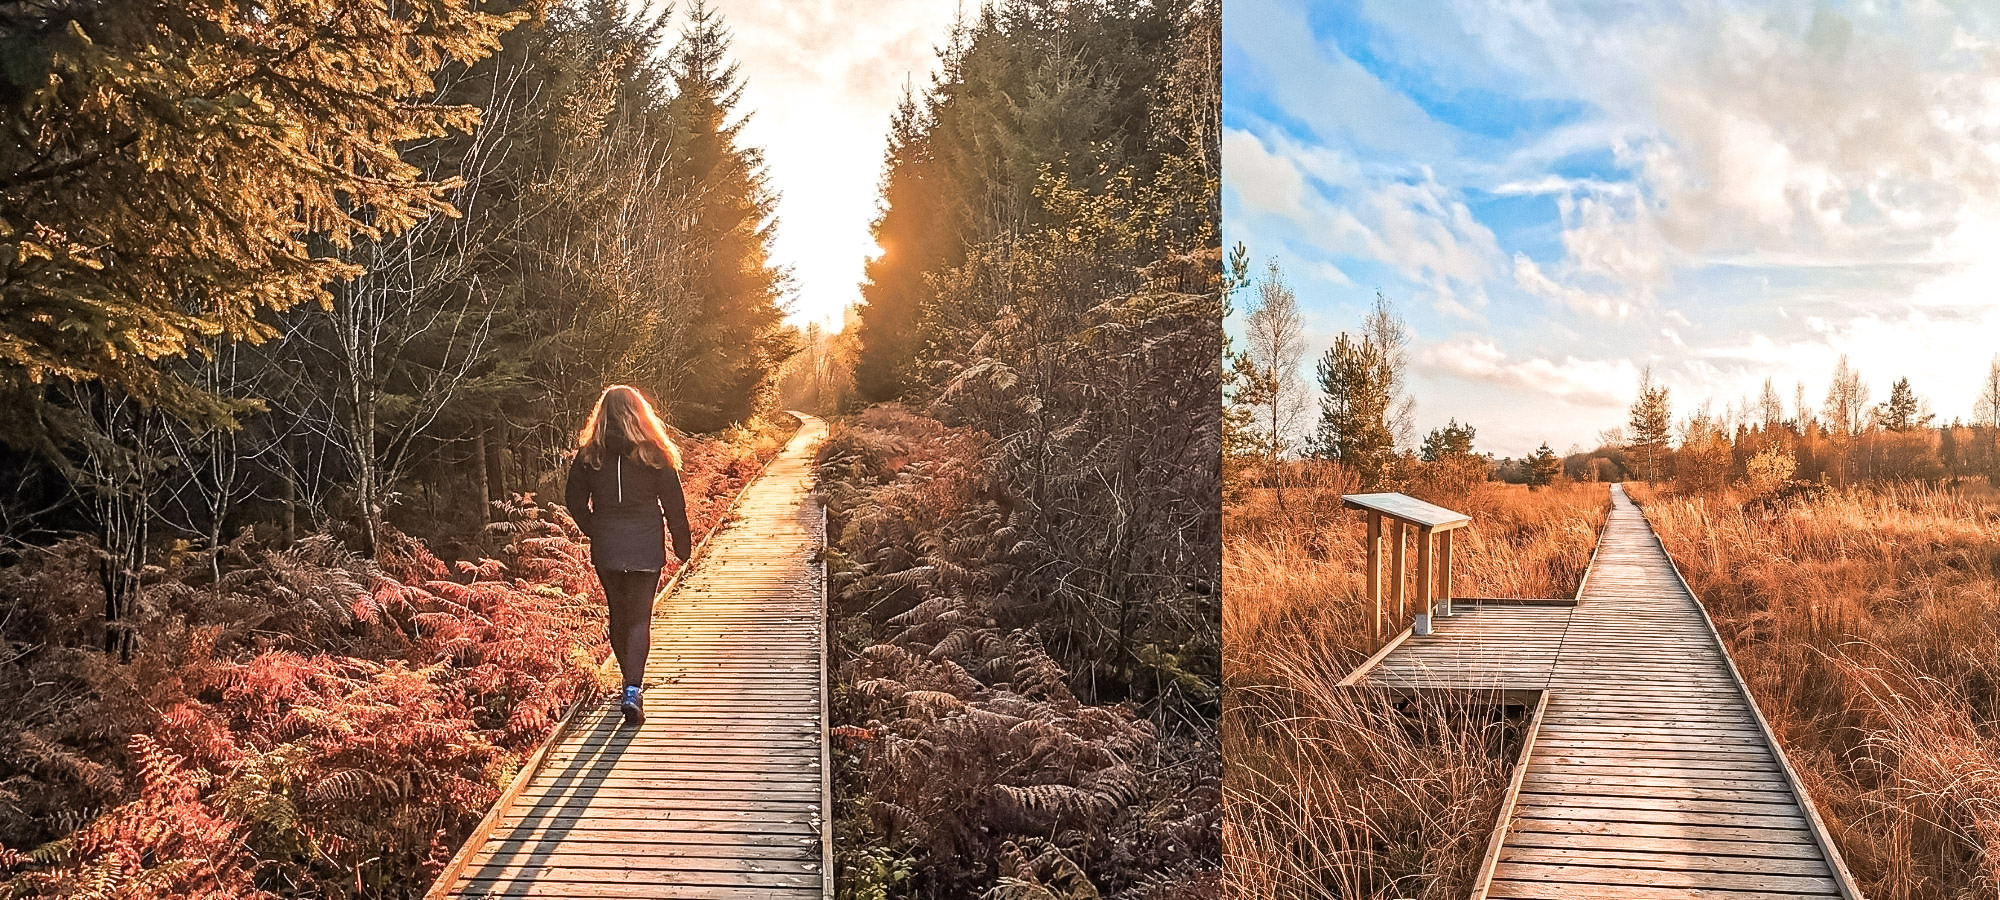 Woman walking on a wooden pathway on the Plateau des Tailes, Belgium